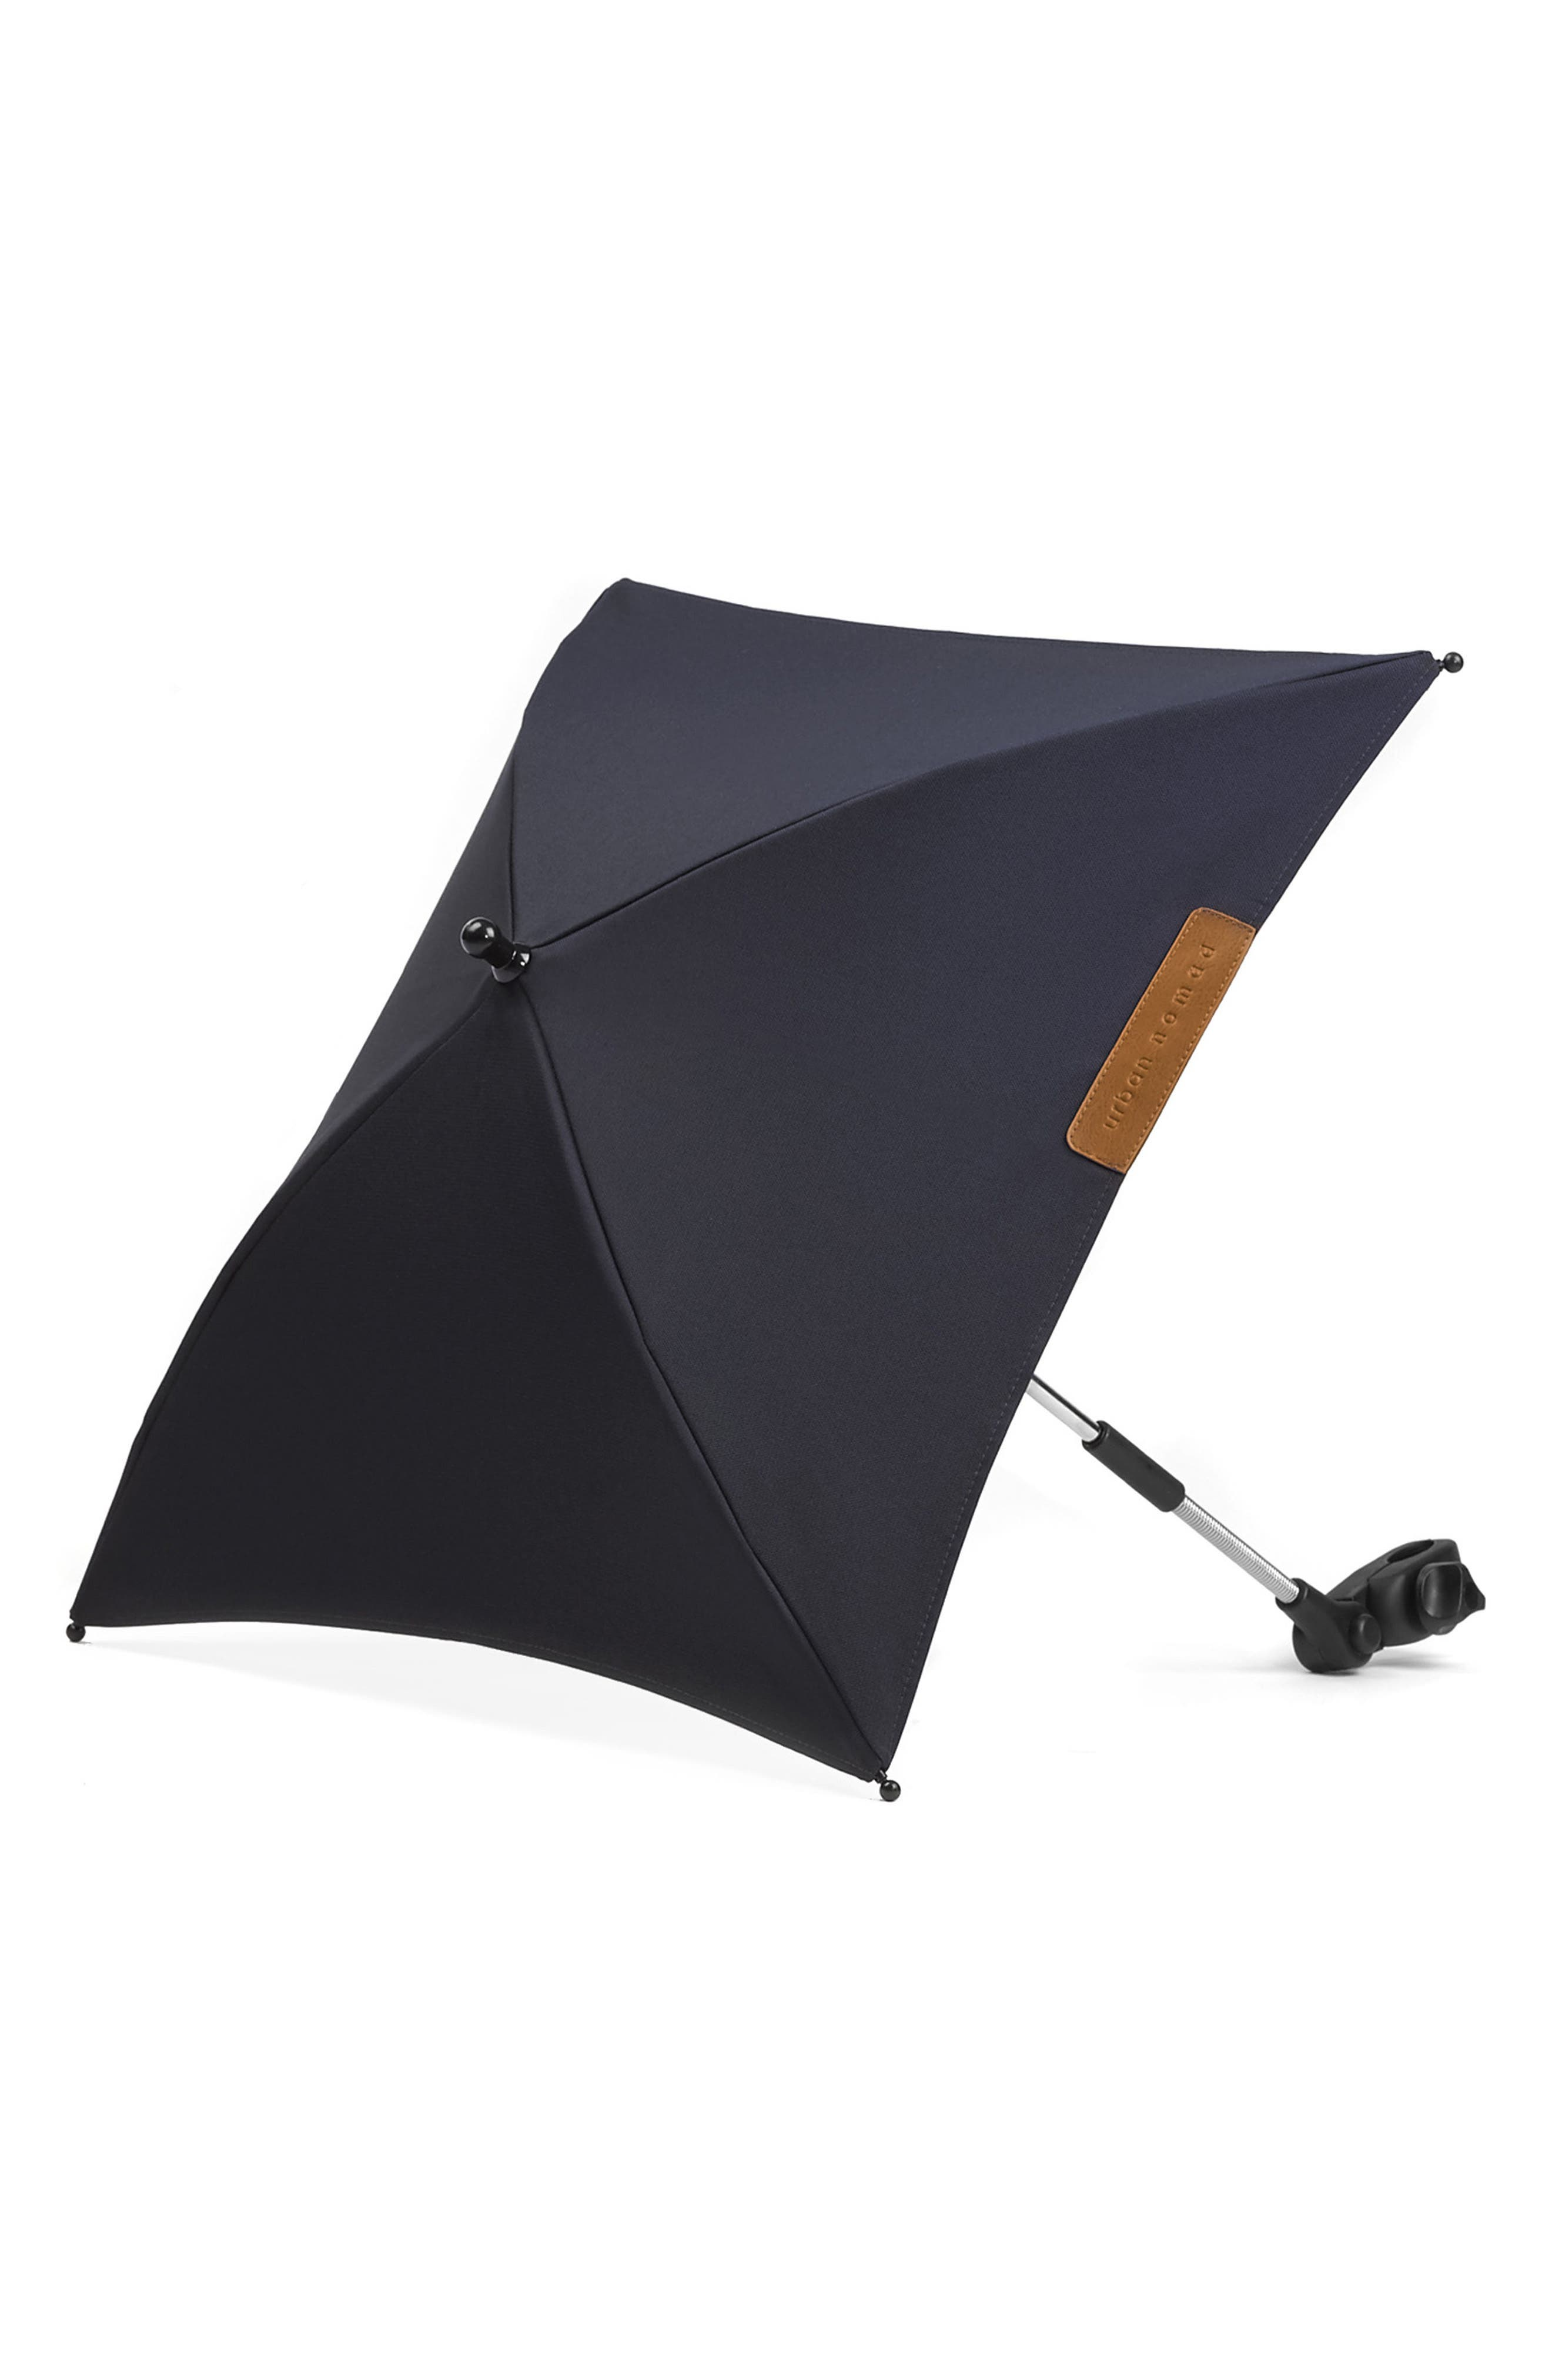 Alternate Image 1 Selected - Mutsy Evo - Urban Nomad Stroller Umbrella